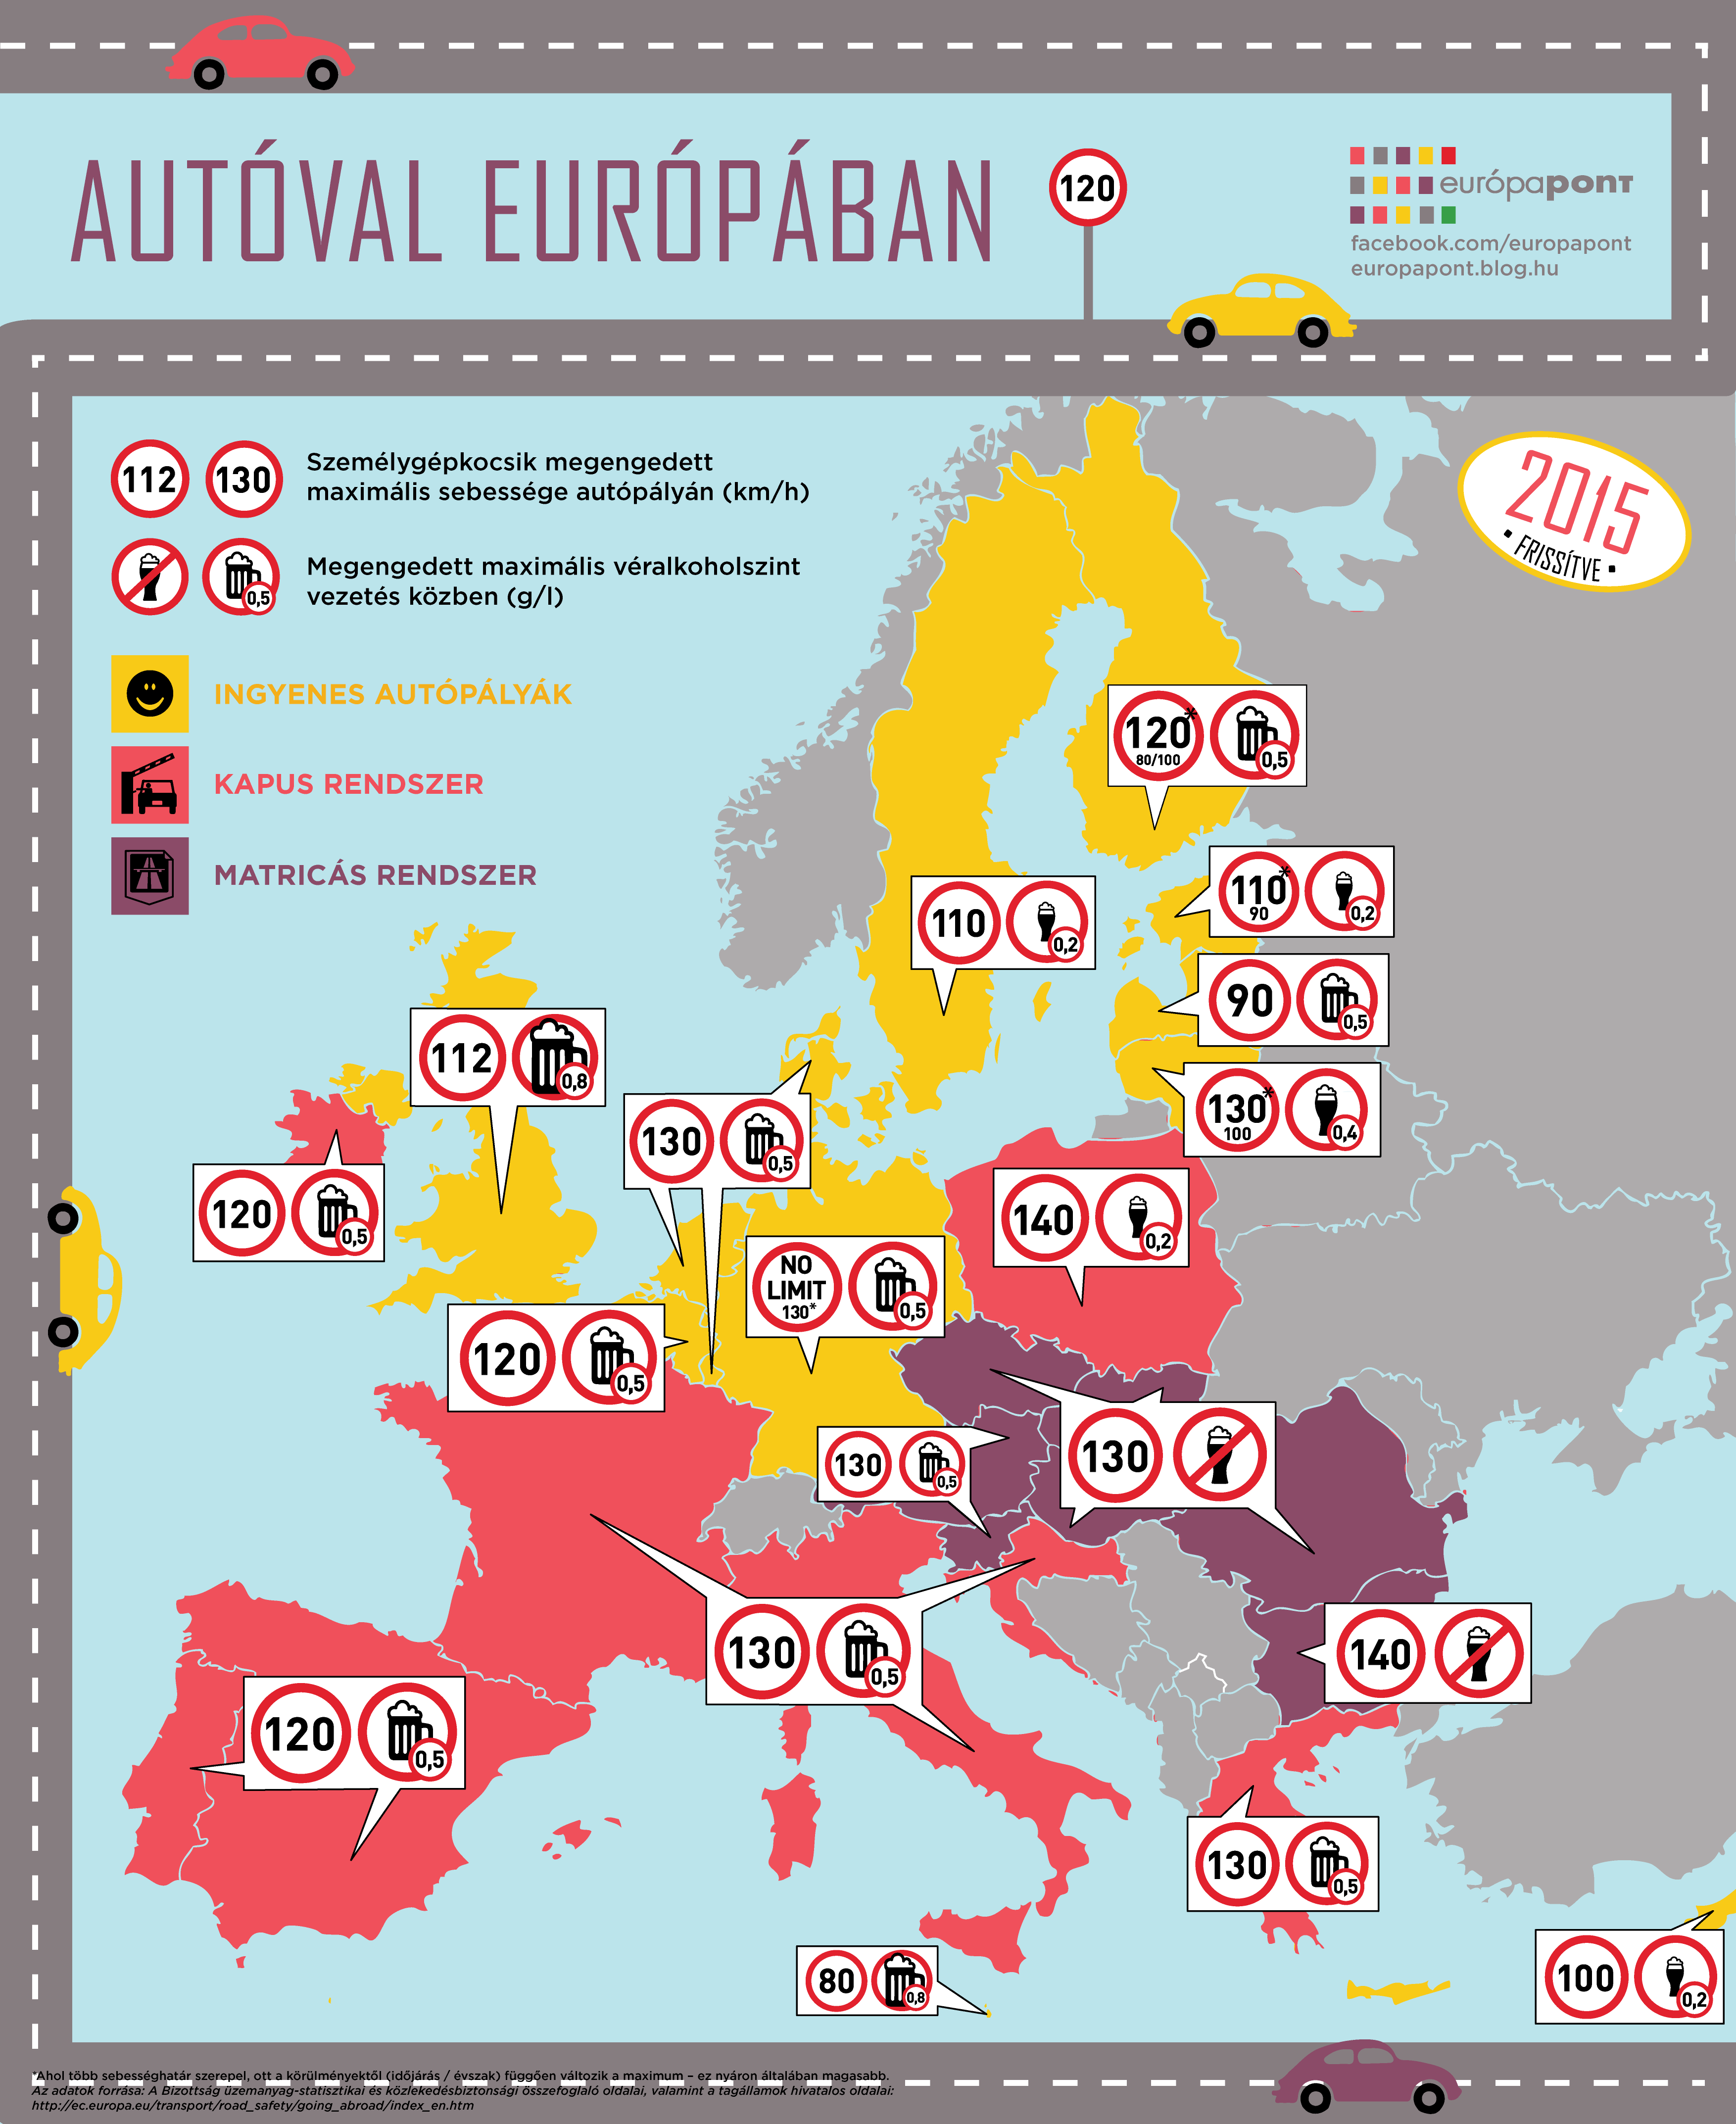 autoval_europaban_2015-01.png